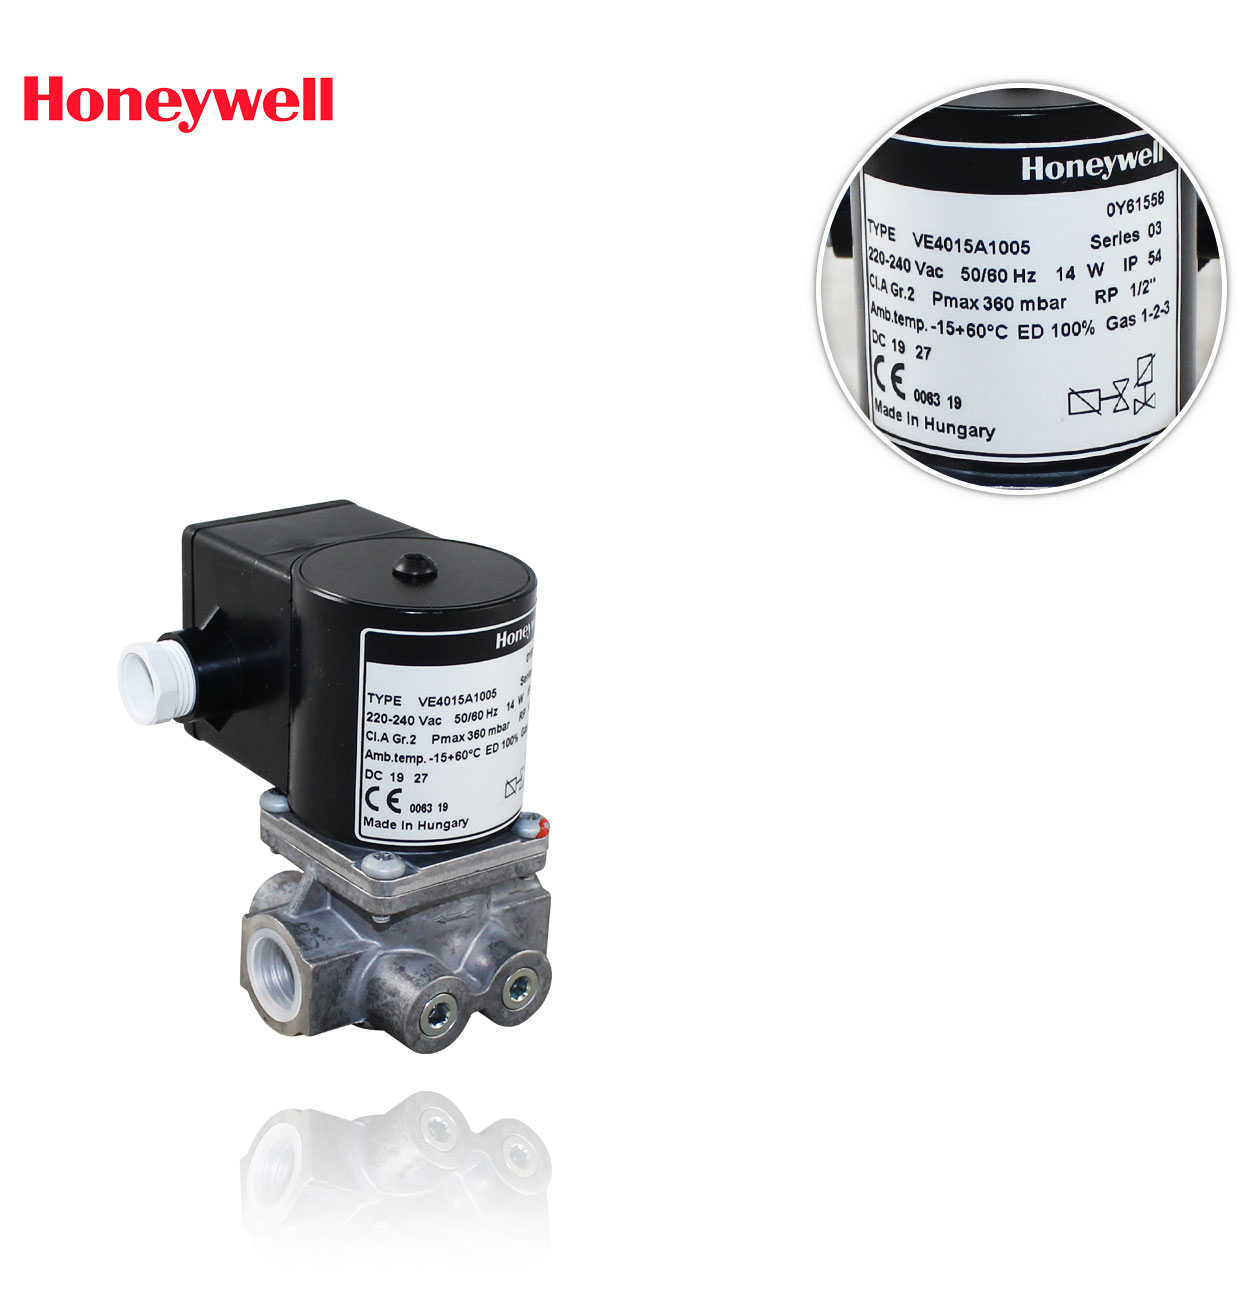 "VE 4015 A 1005 R1/2"" 360mbar. ELECTROVALVULA HONEYWELL"